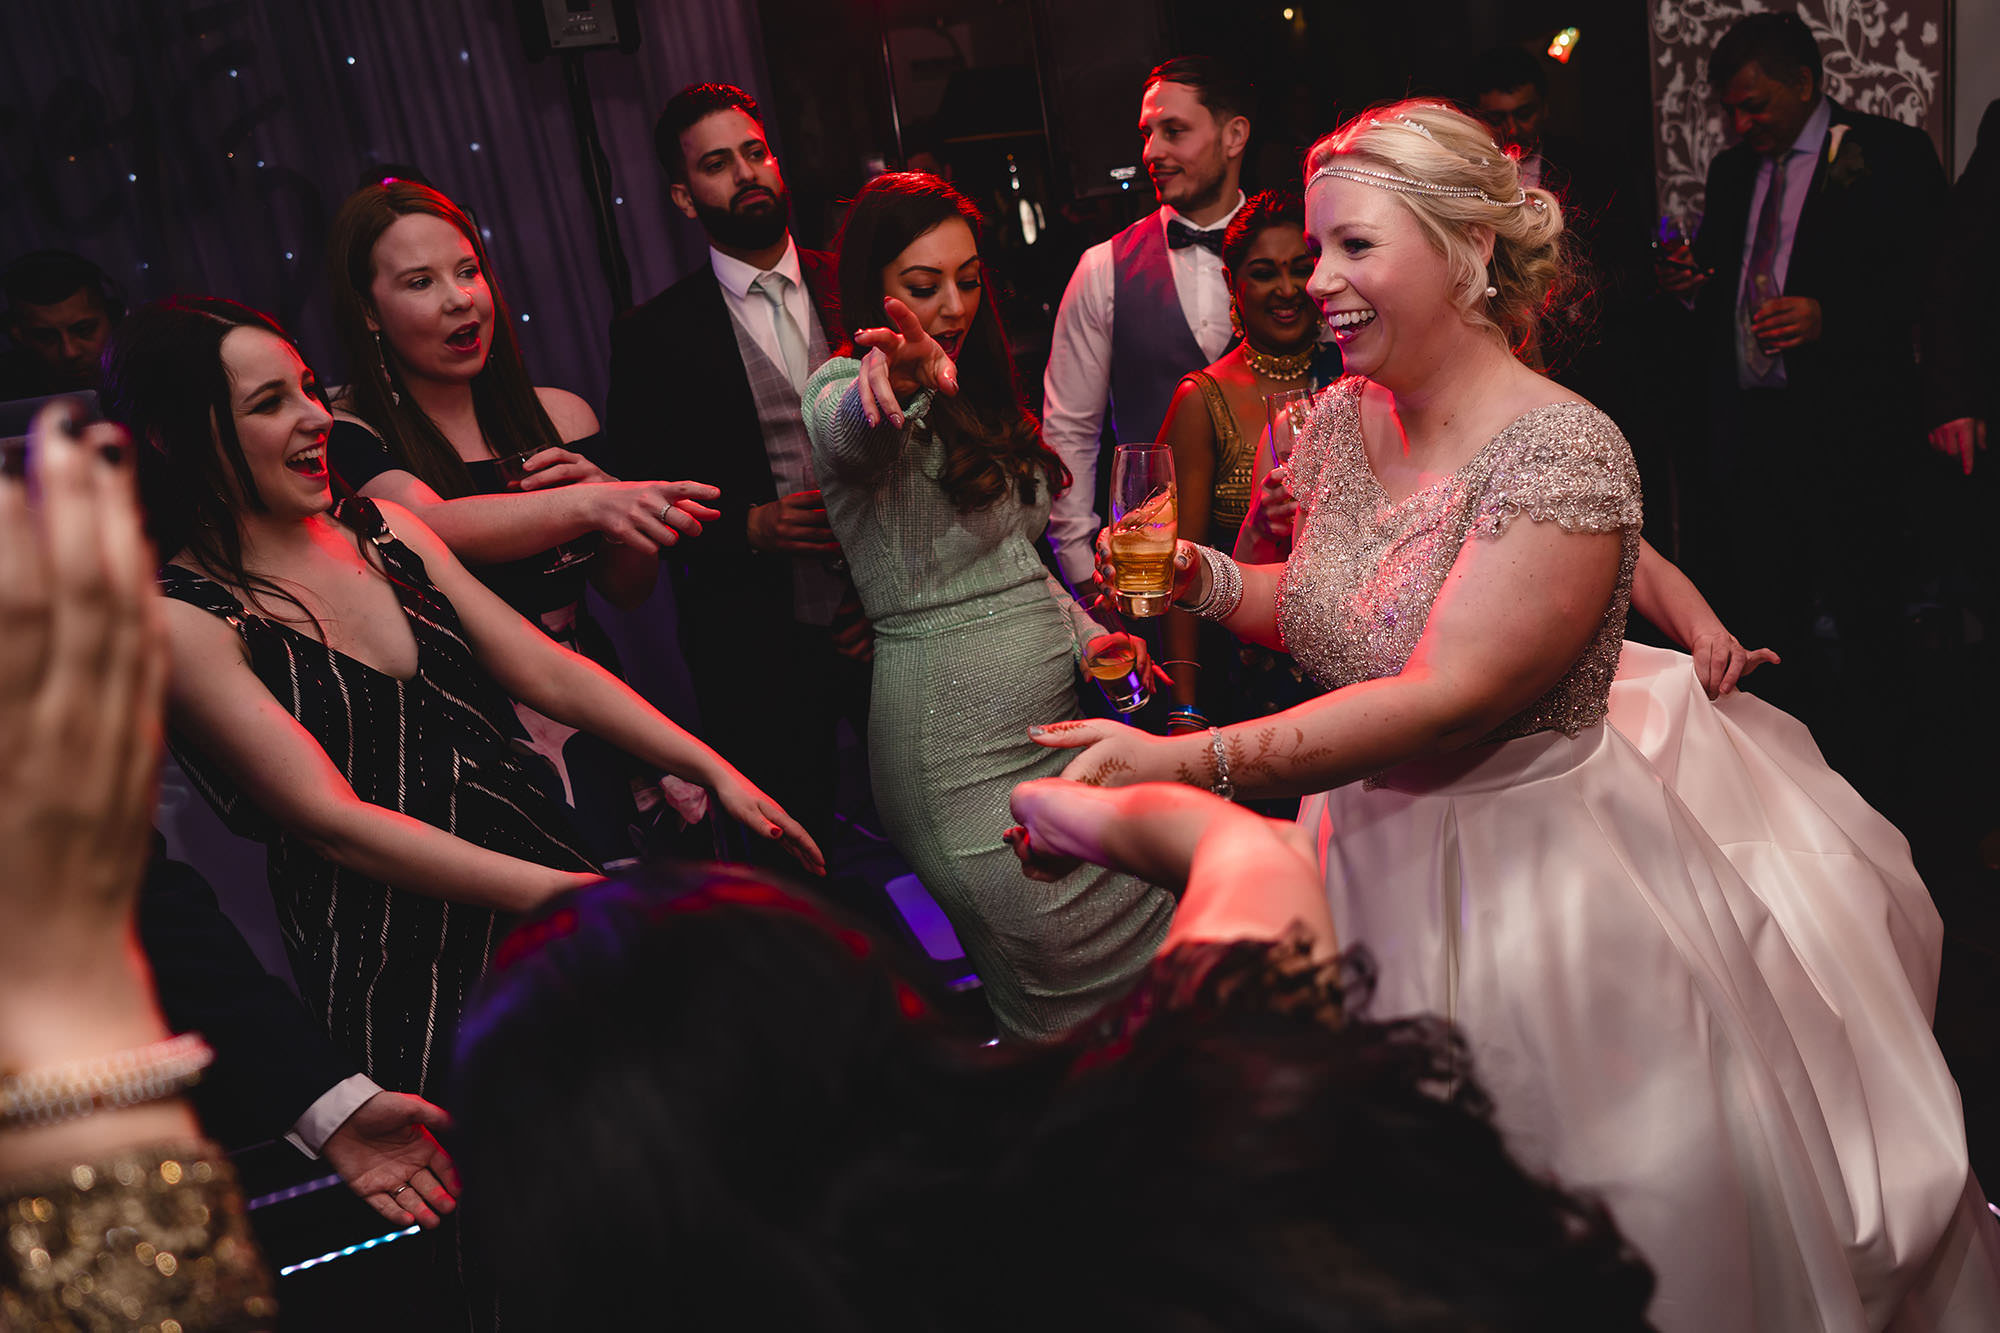 bride dancing with friends on the dancefloor